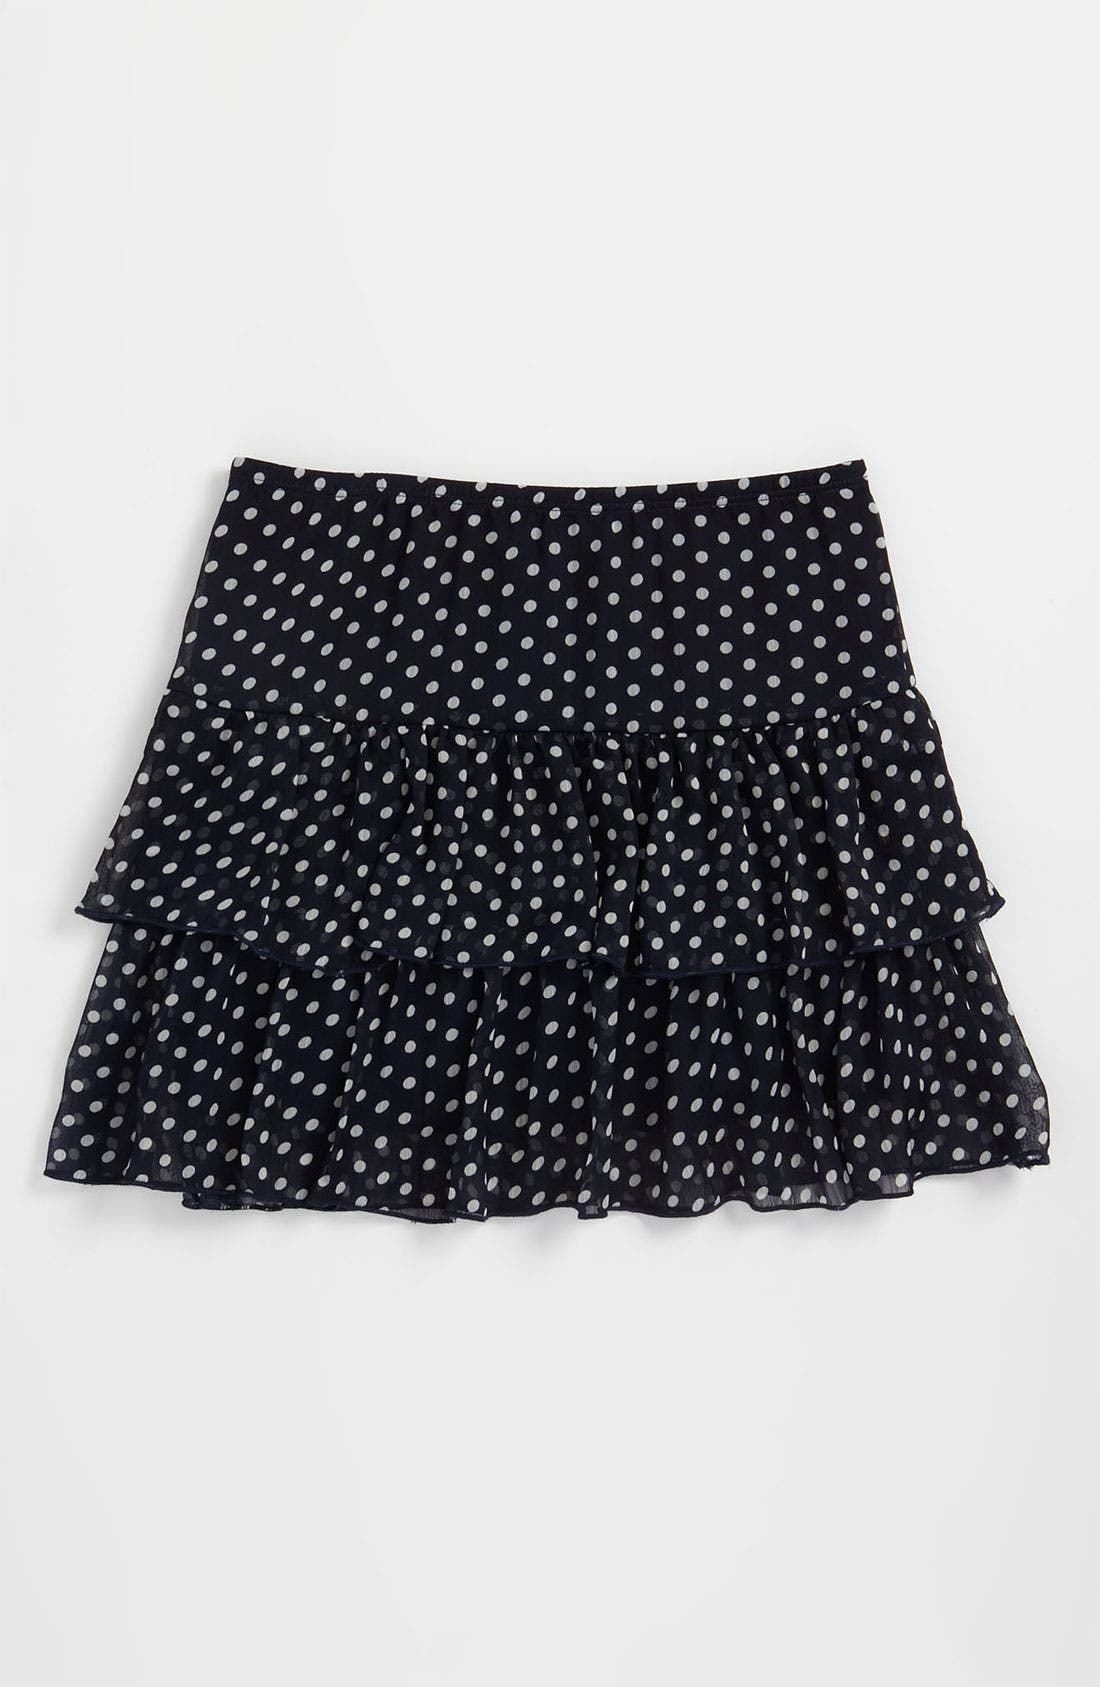 Alternate Image 1 Selected - Zunie Chiffon Skirt (Big Girls)